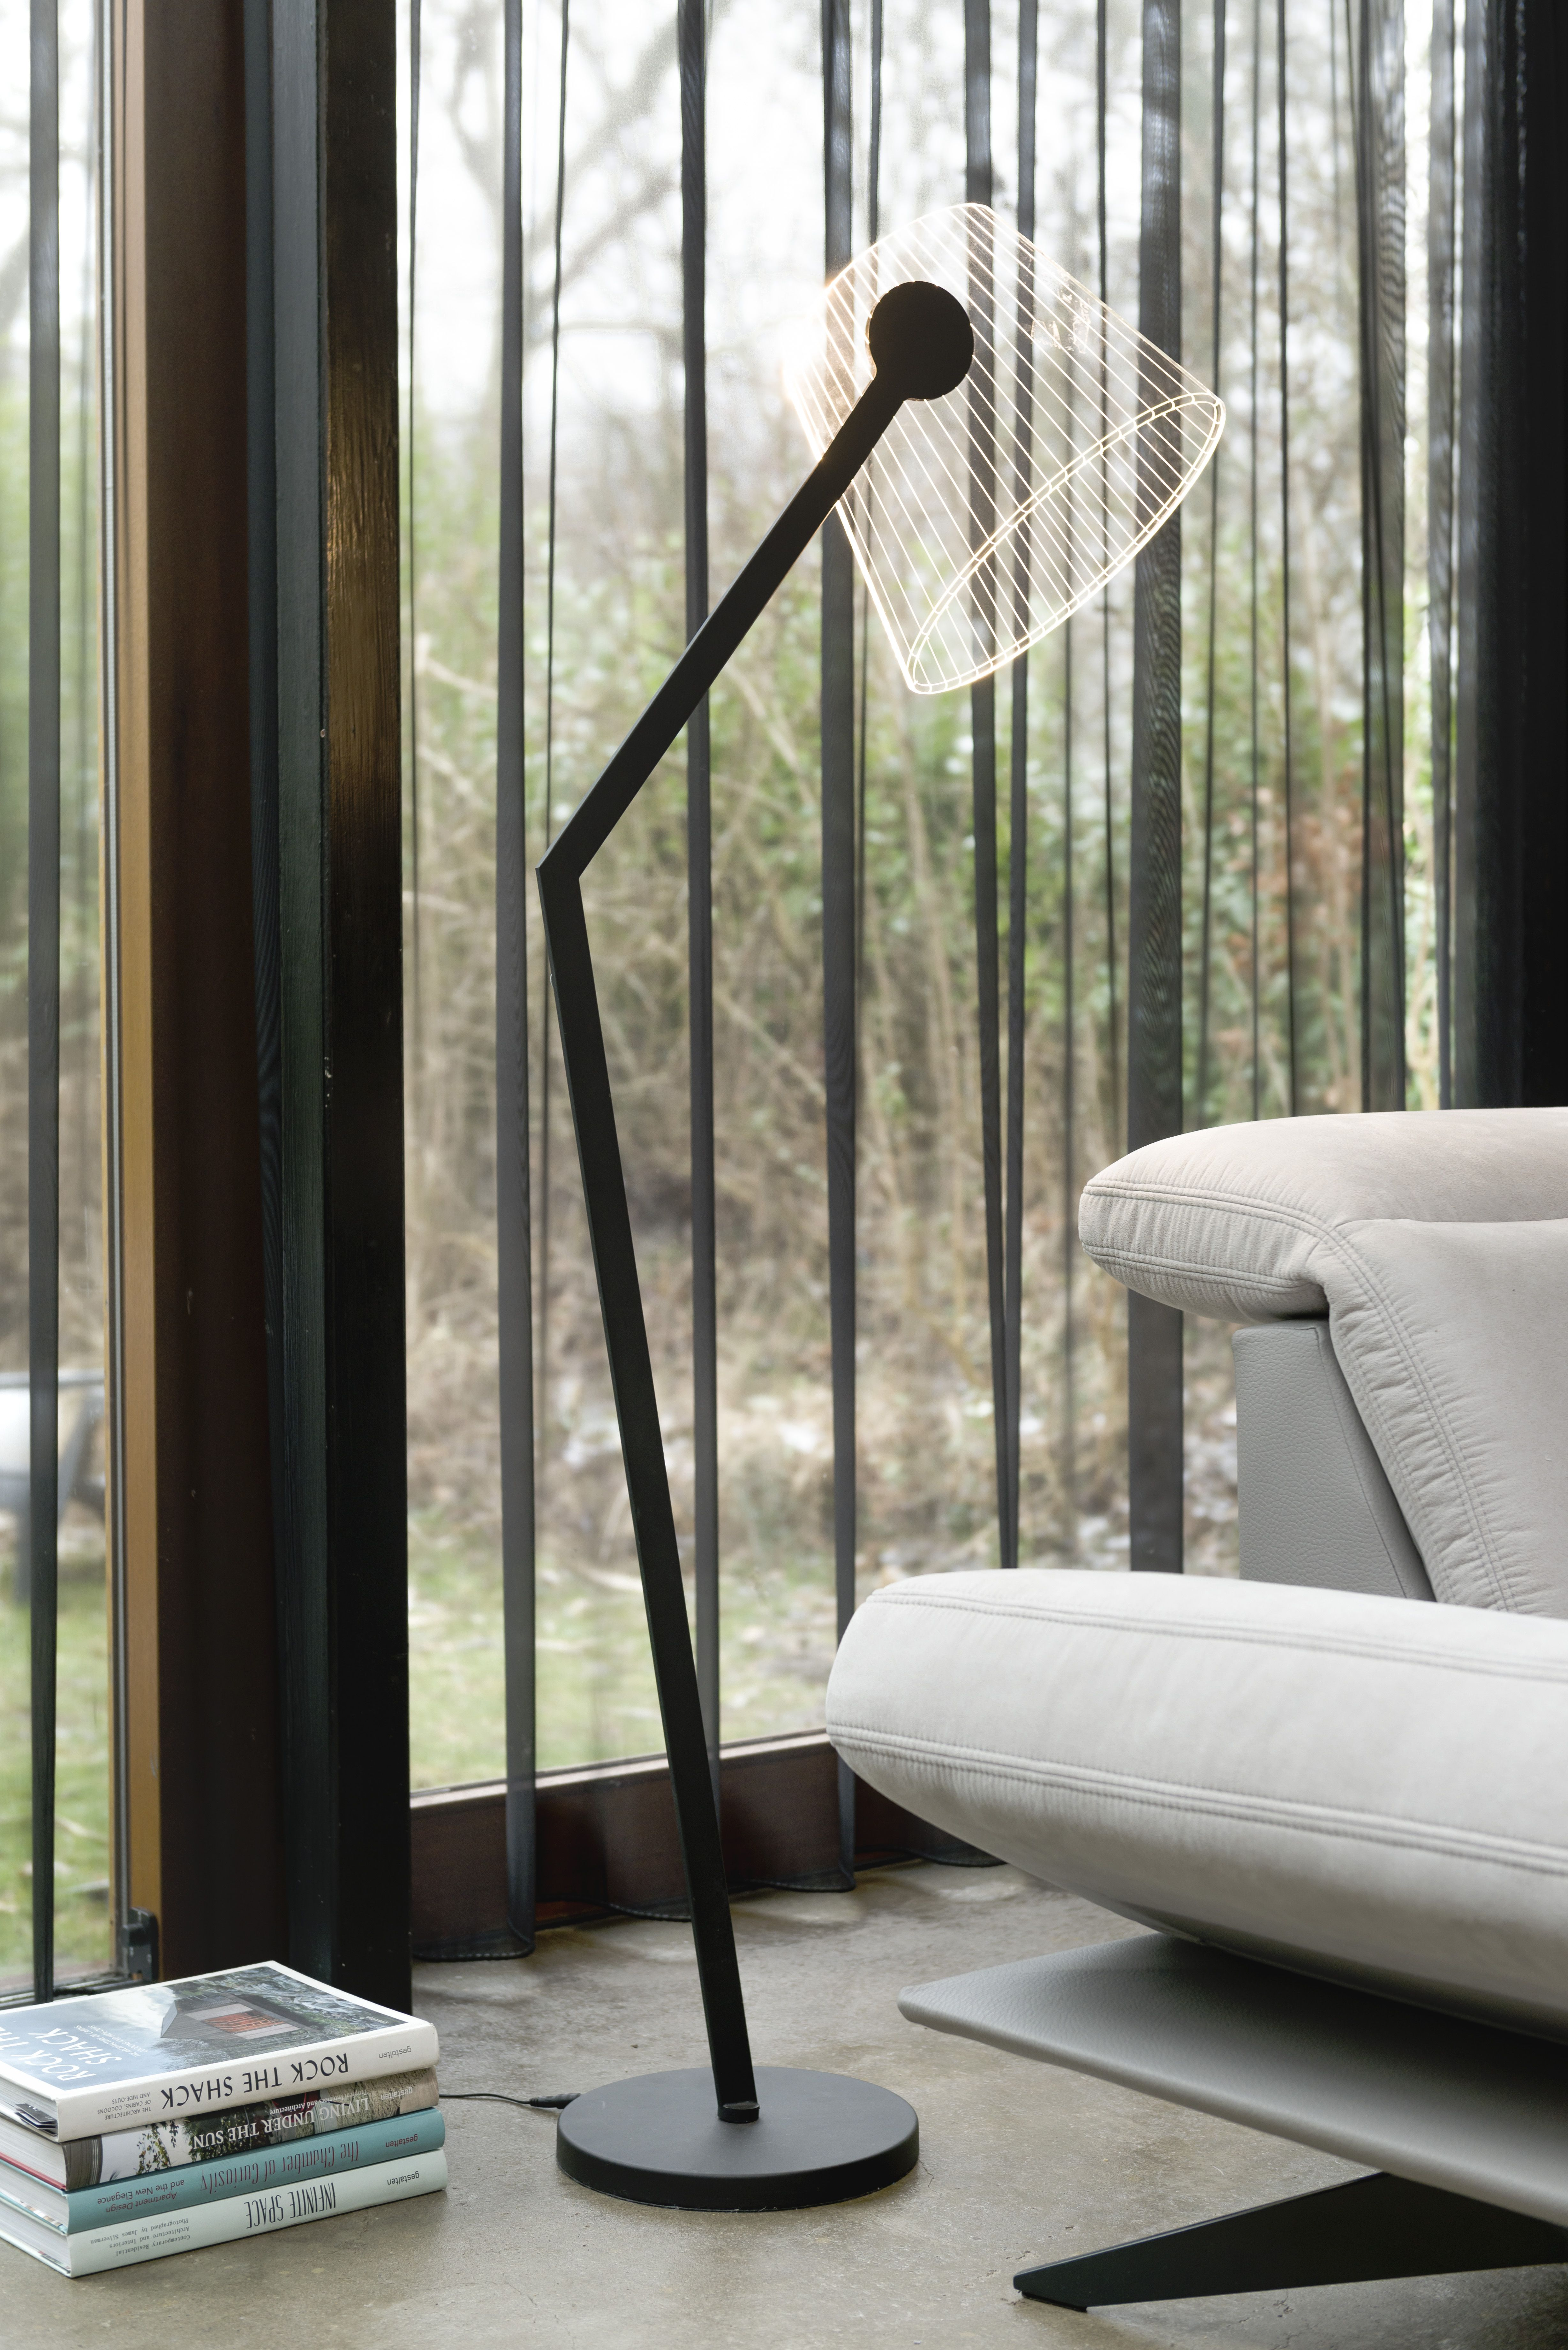 Floor lamp neyo from coco maison is very usefull light for reading floor lamp neyo from coco maison is very usefull light for reading with its integrated led aloadofball Choice Image